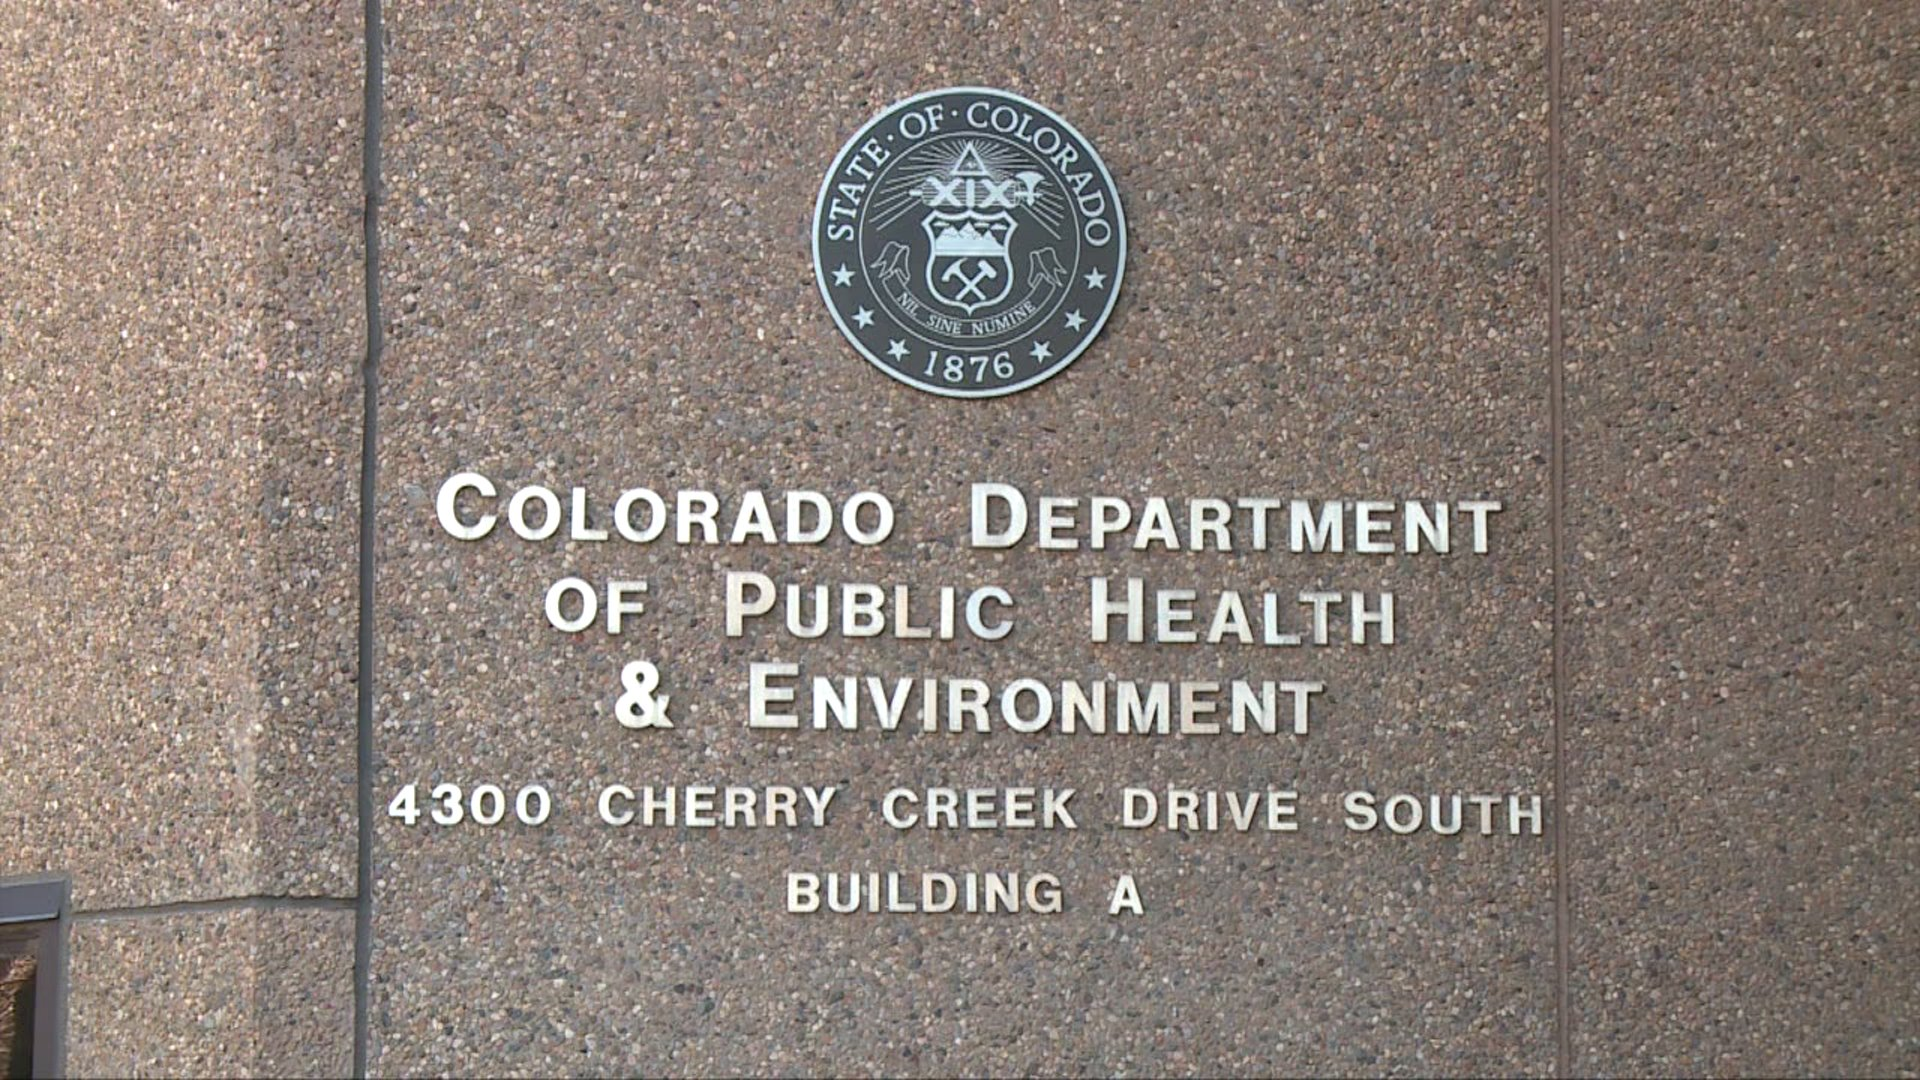 The Colorado Department of Public Health and Environment in Glendale. (CDPHE)